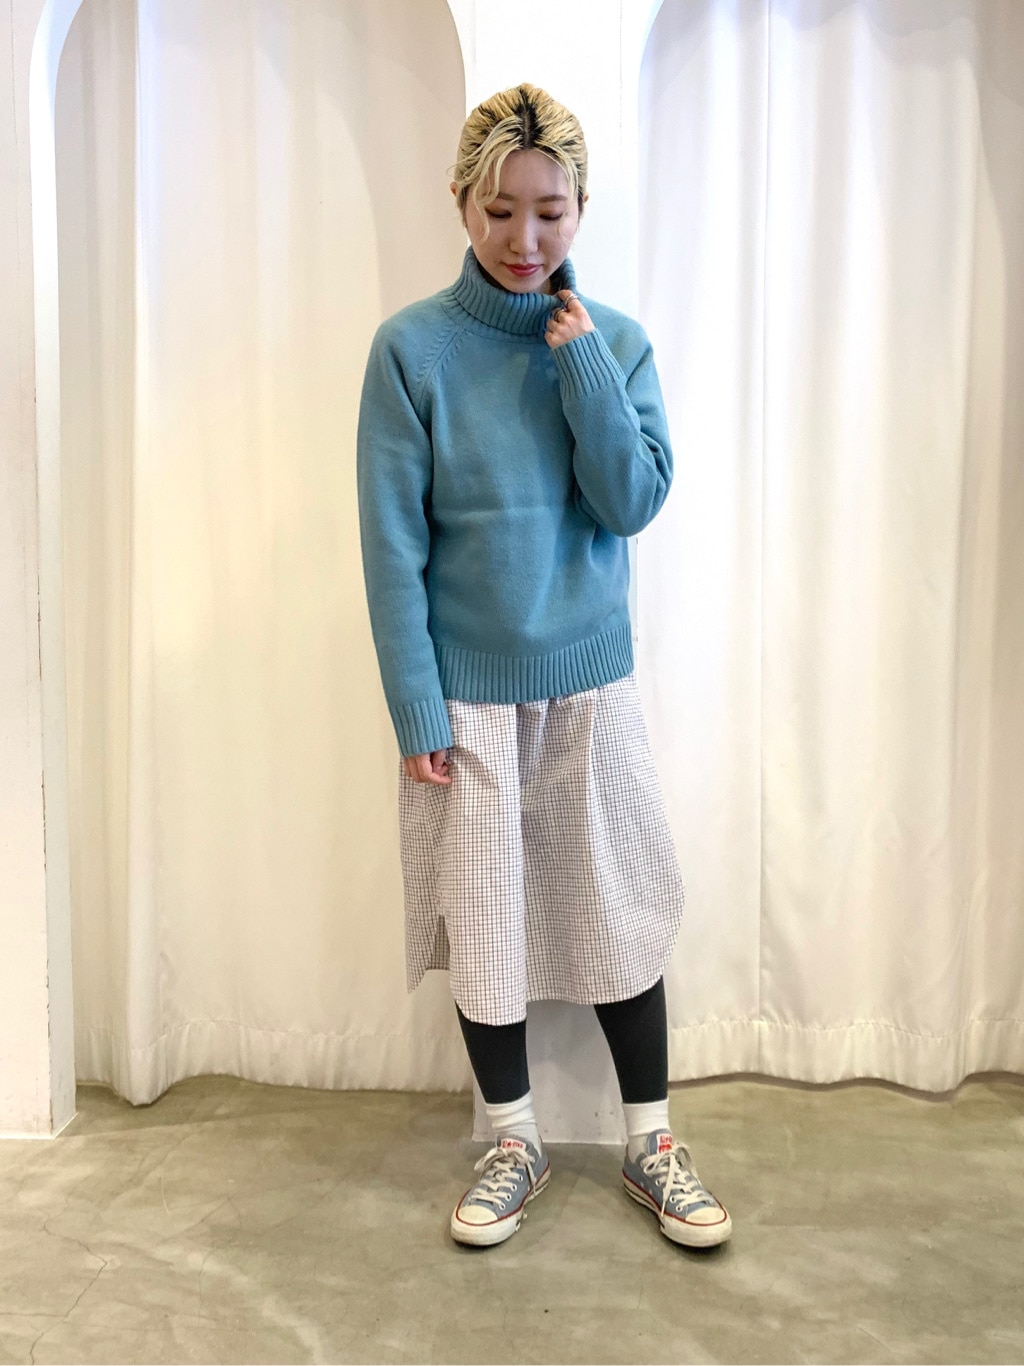 Dot and Stripes CHILD WOMAN ラフォーレ原宿 身長:160cm 2021.01.21